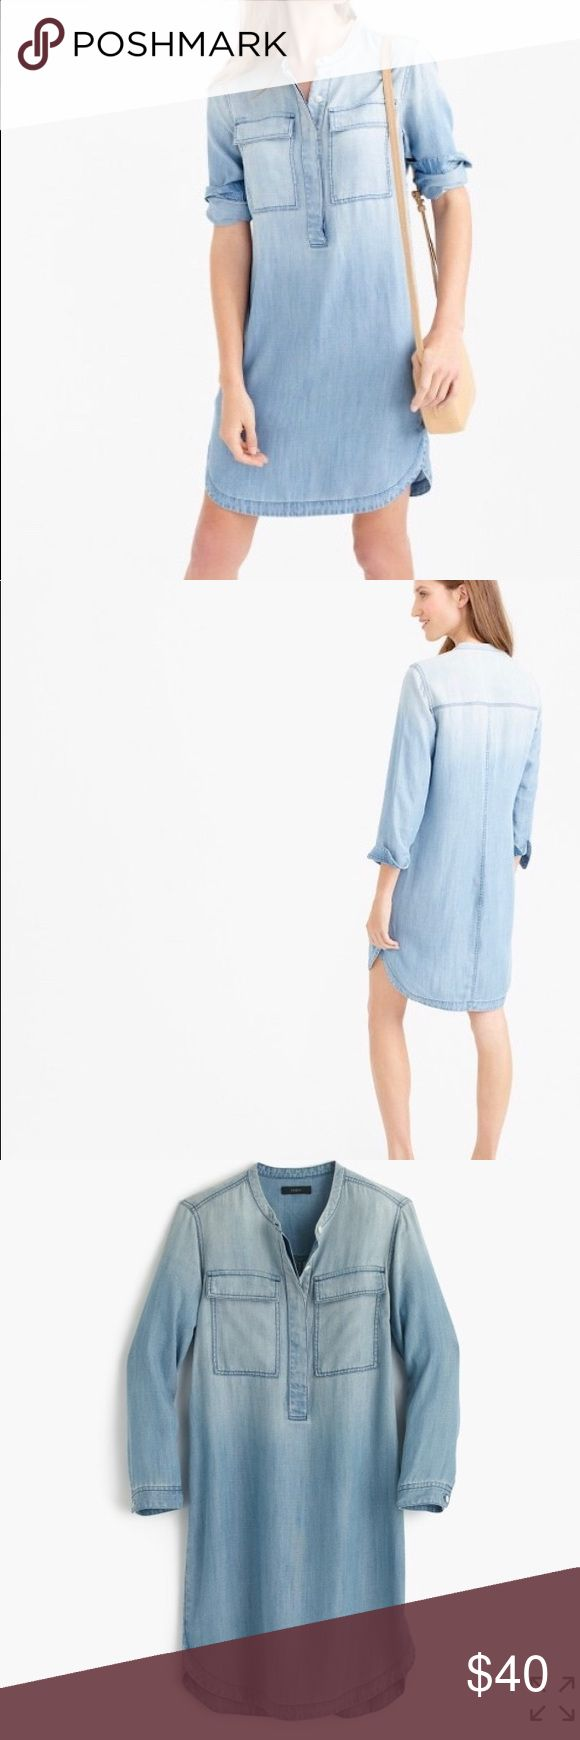 J. Crew Drapey Chambray Shirt Dress J. Crew drapey Chambray shirt dress. Straight silhouette. Super soft. Finished shirttail hem. Faded wash. Button closure. Hem in back is a little pulled, see last picture. J. Crew Dresses